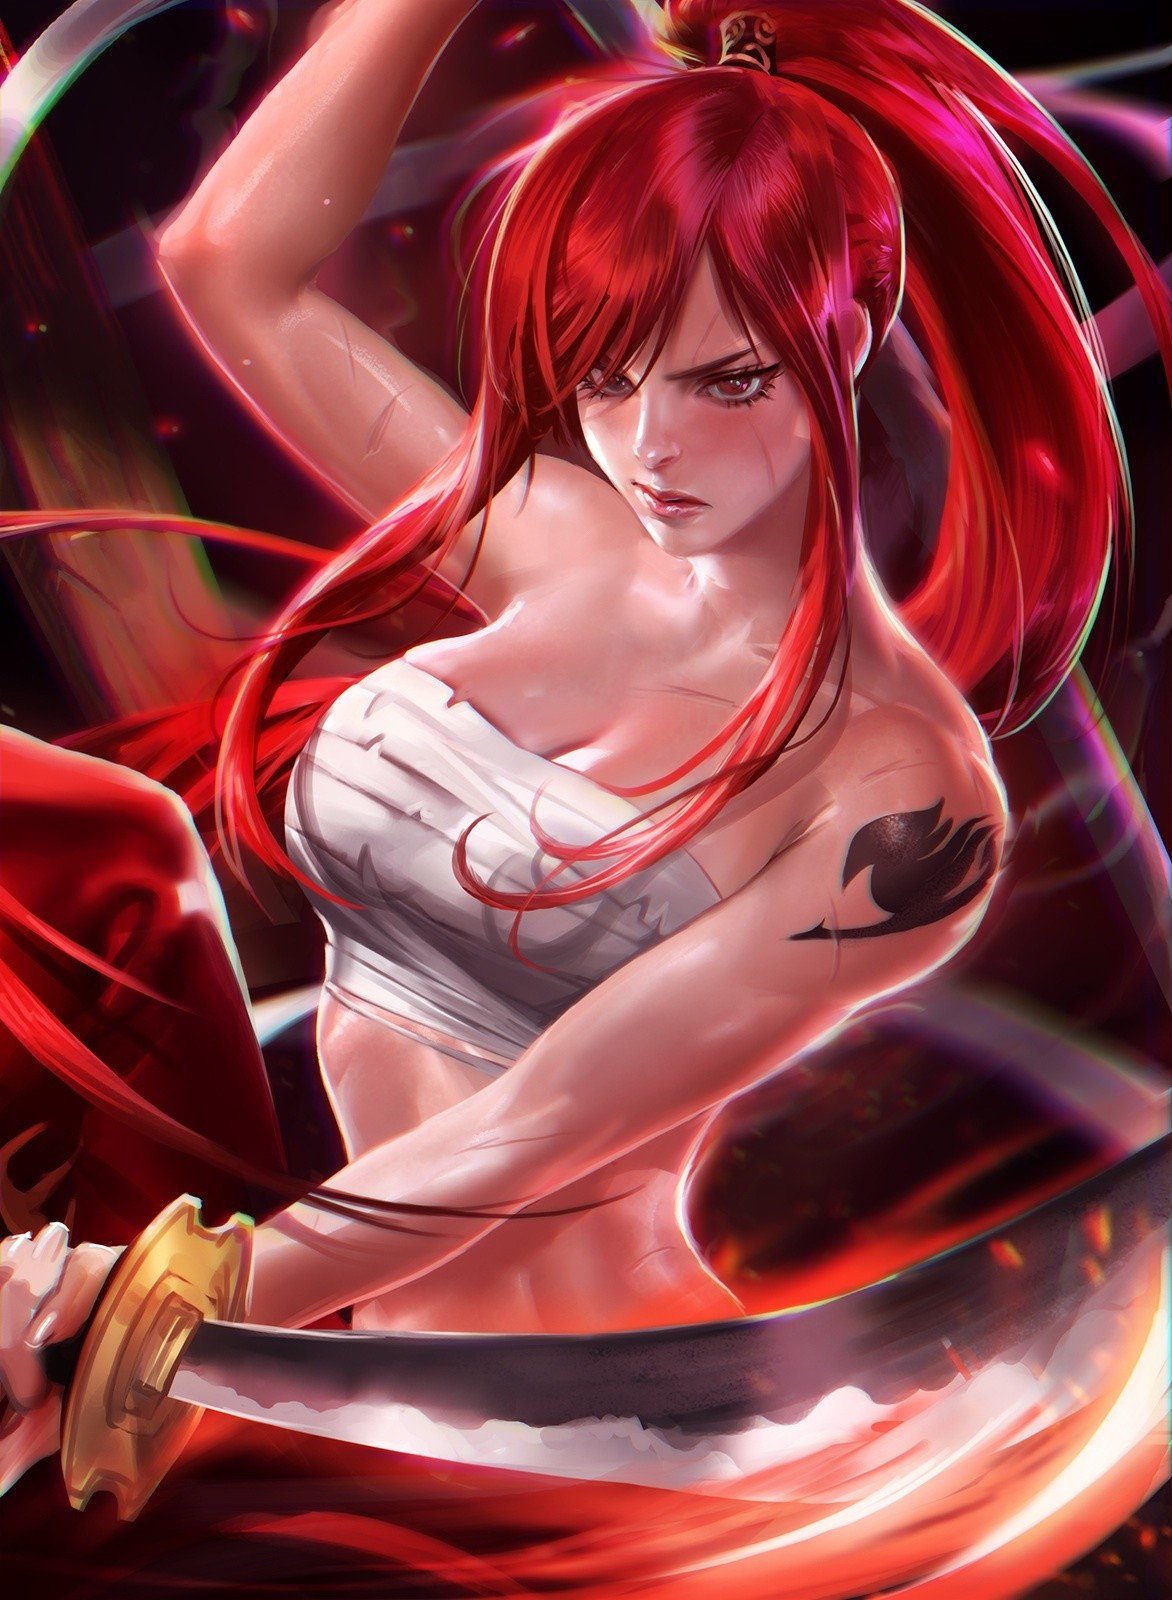 Erza-Scarlet-Fairy-Tail艾露莎